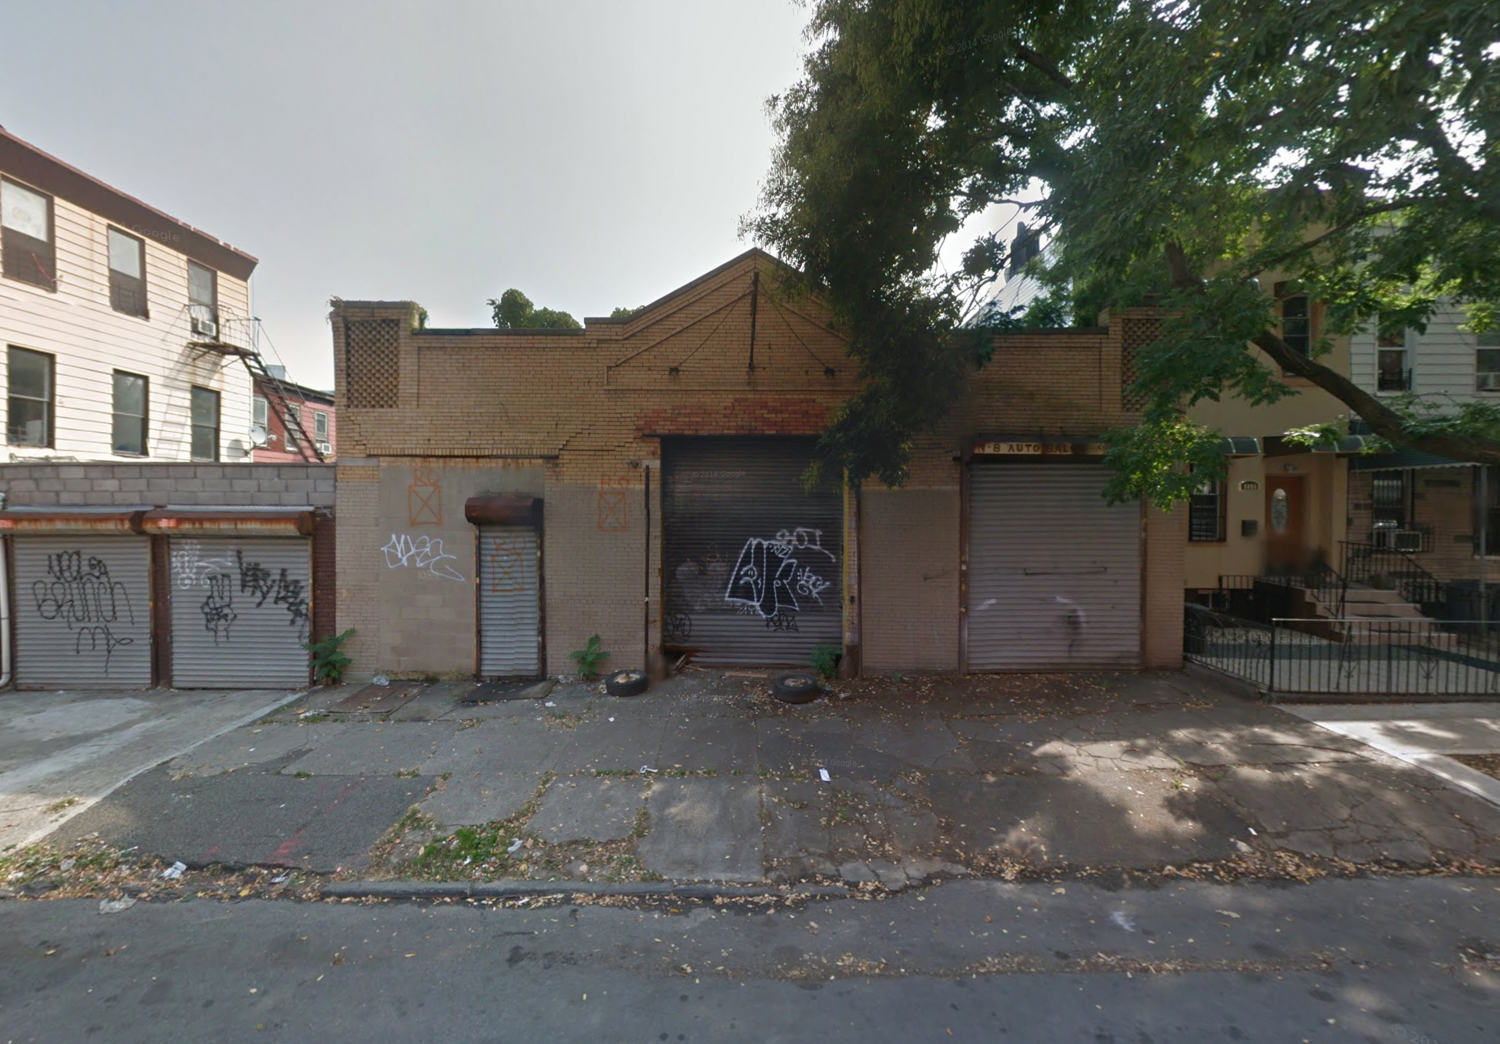 1084 Decatur Street, via Google Maps